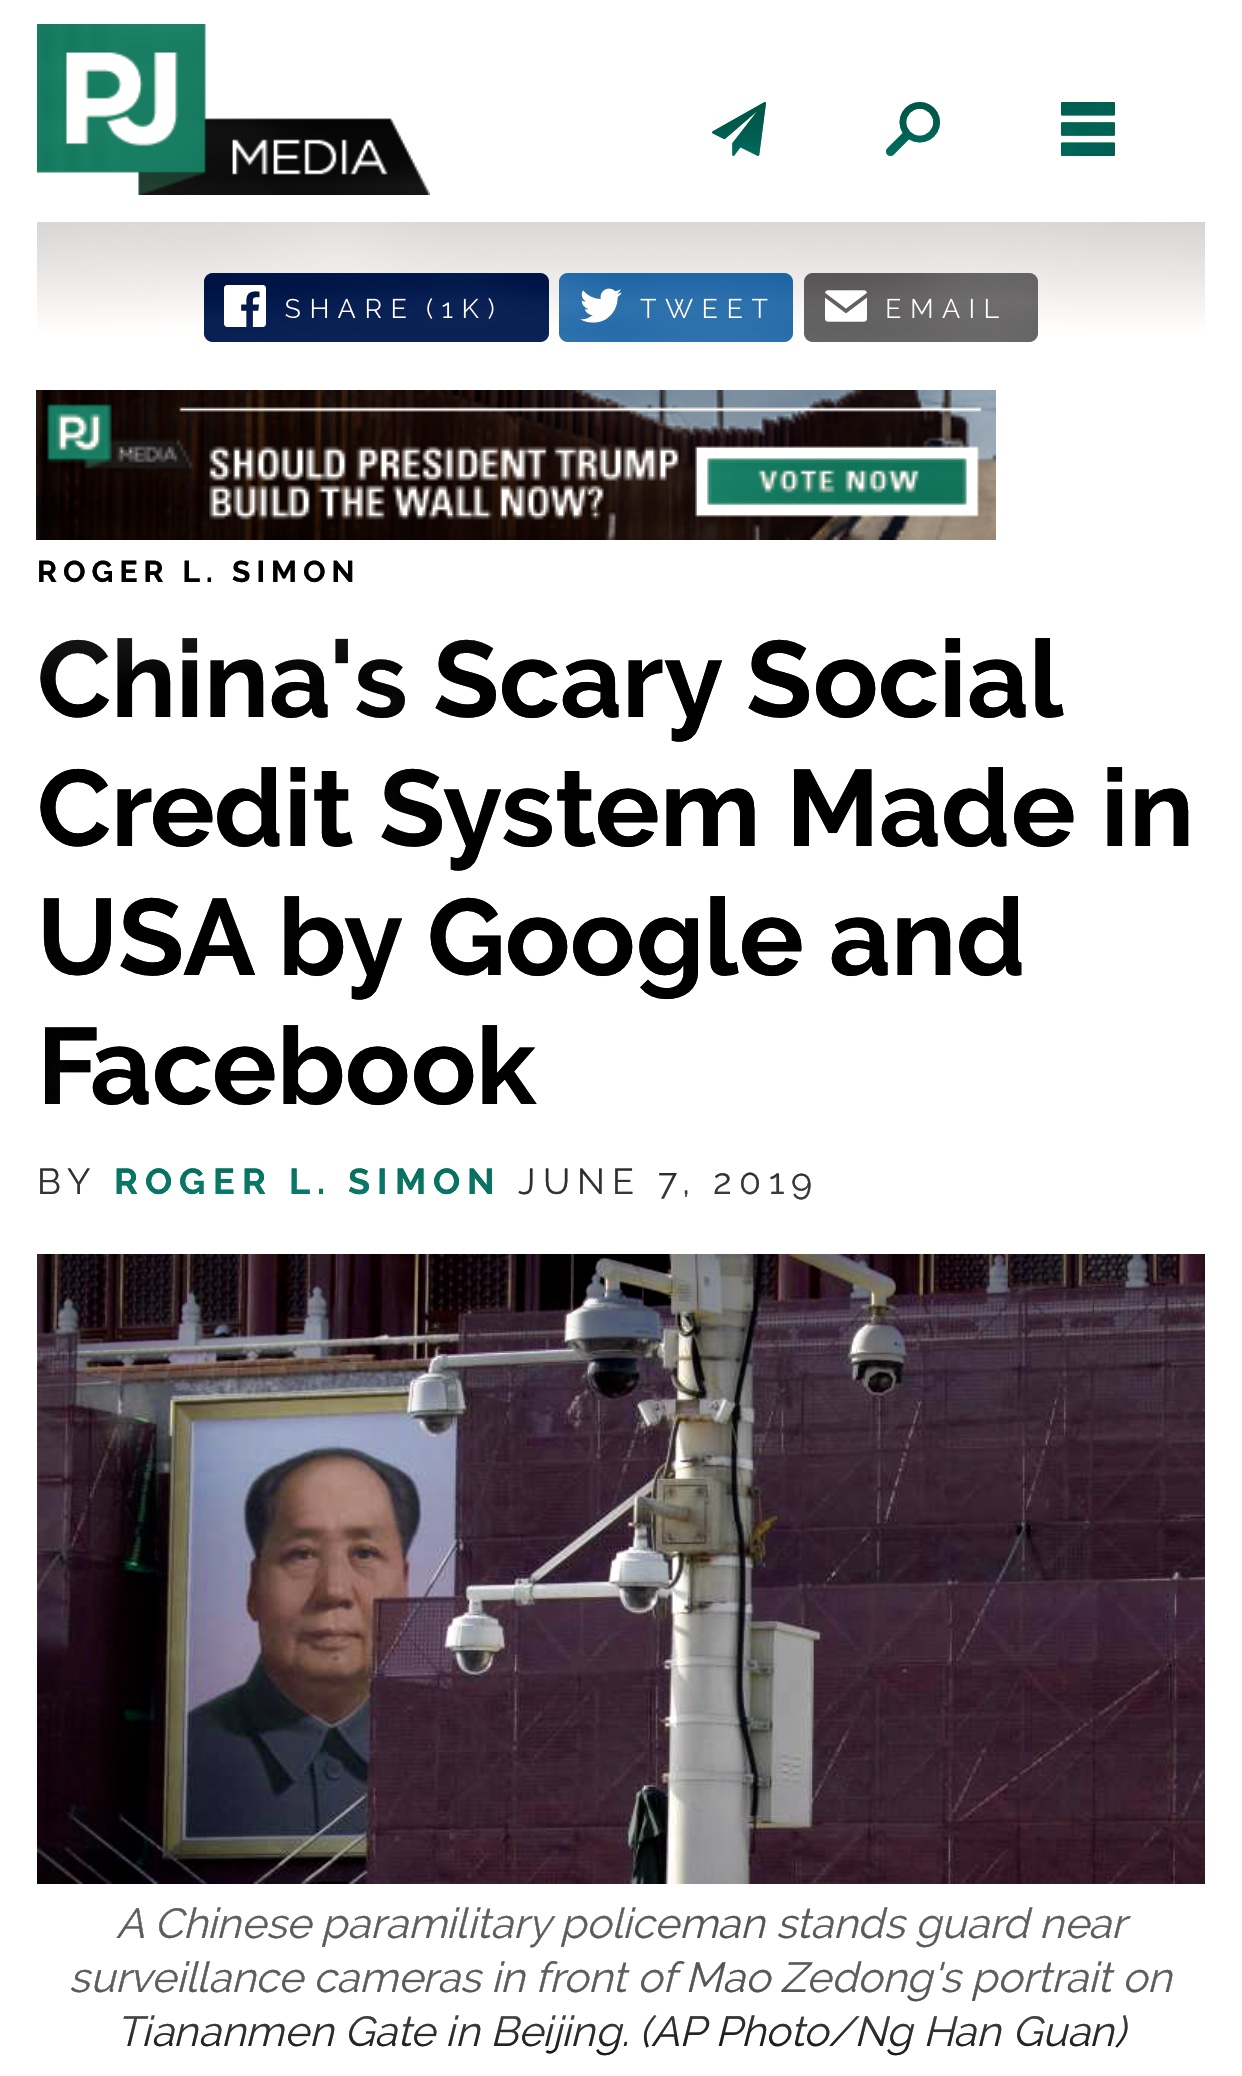 China's Scary Social Credit System Made in USA by Google and Facebook | Roger L. Simon